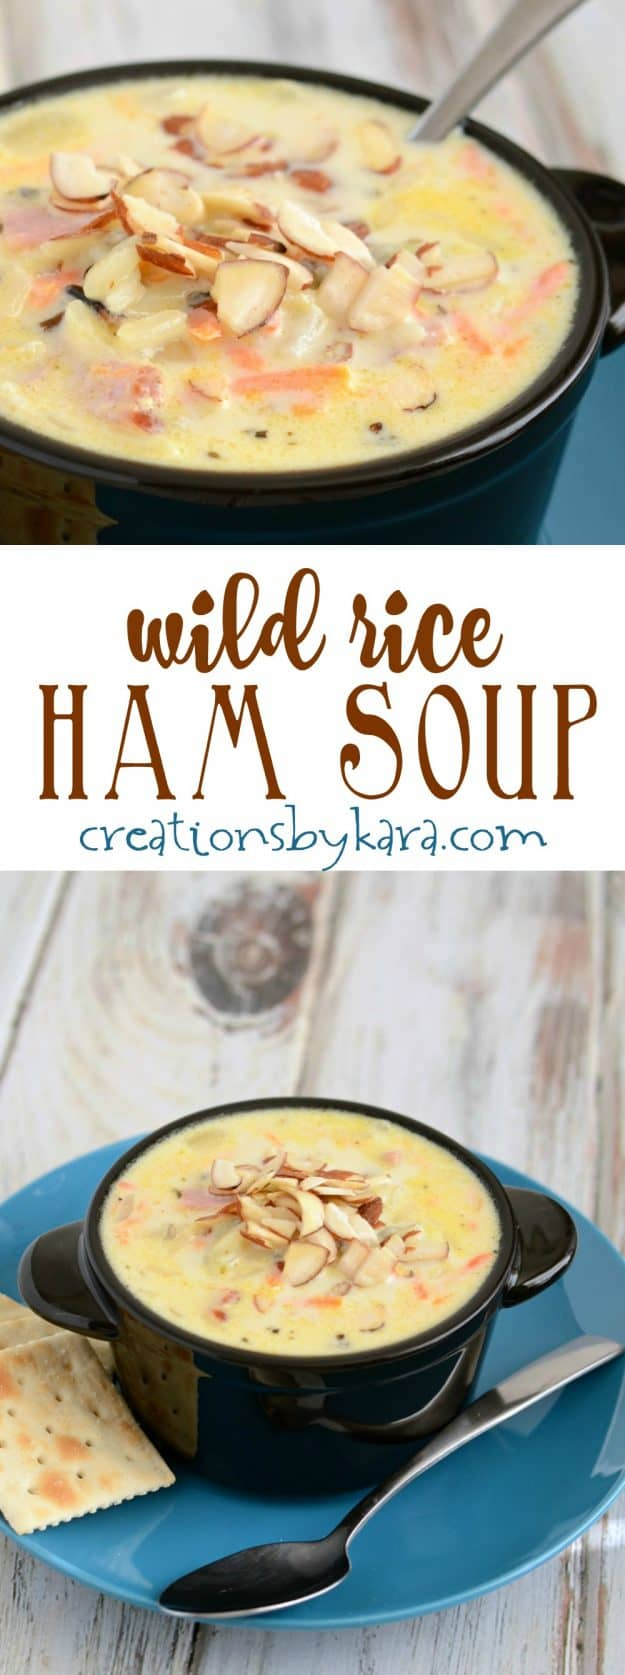 Quick to make and absolutely delicious, this Ham Wild Rice Soup is sure to become a favorite soup recipe!